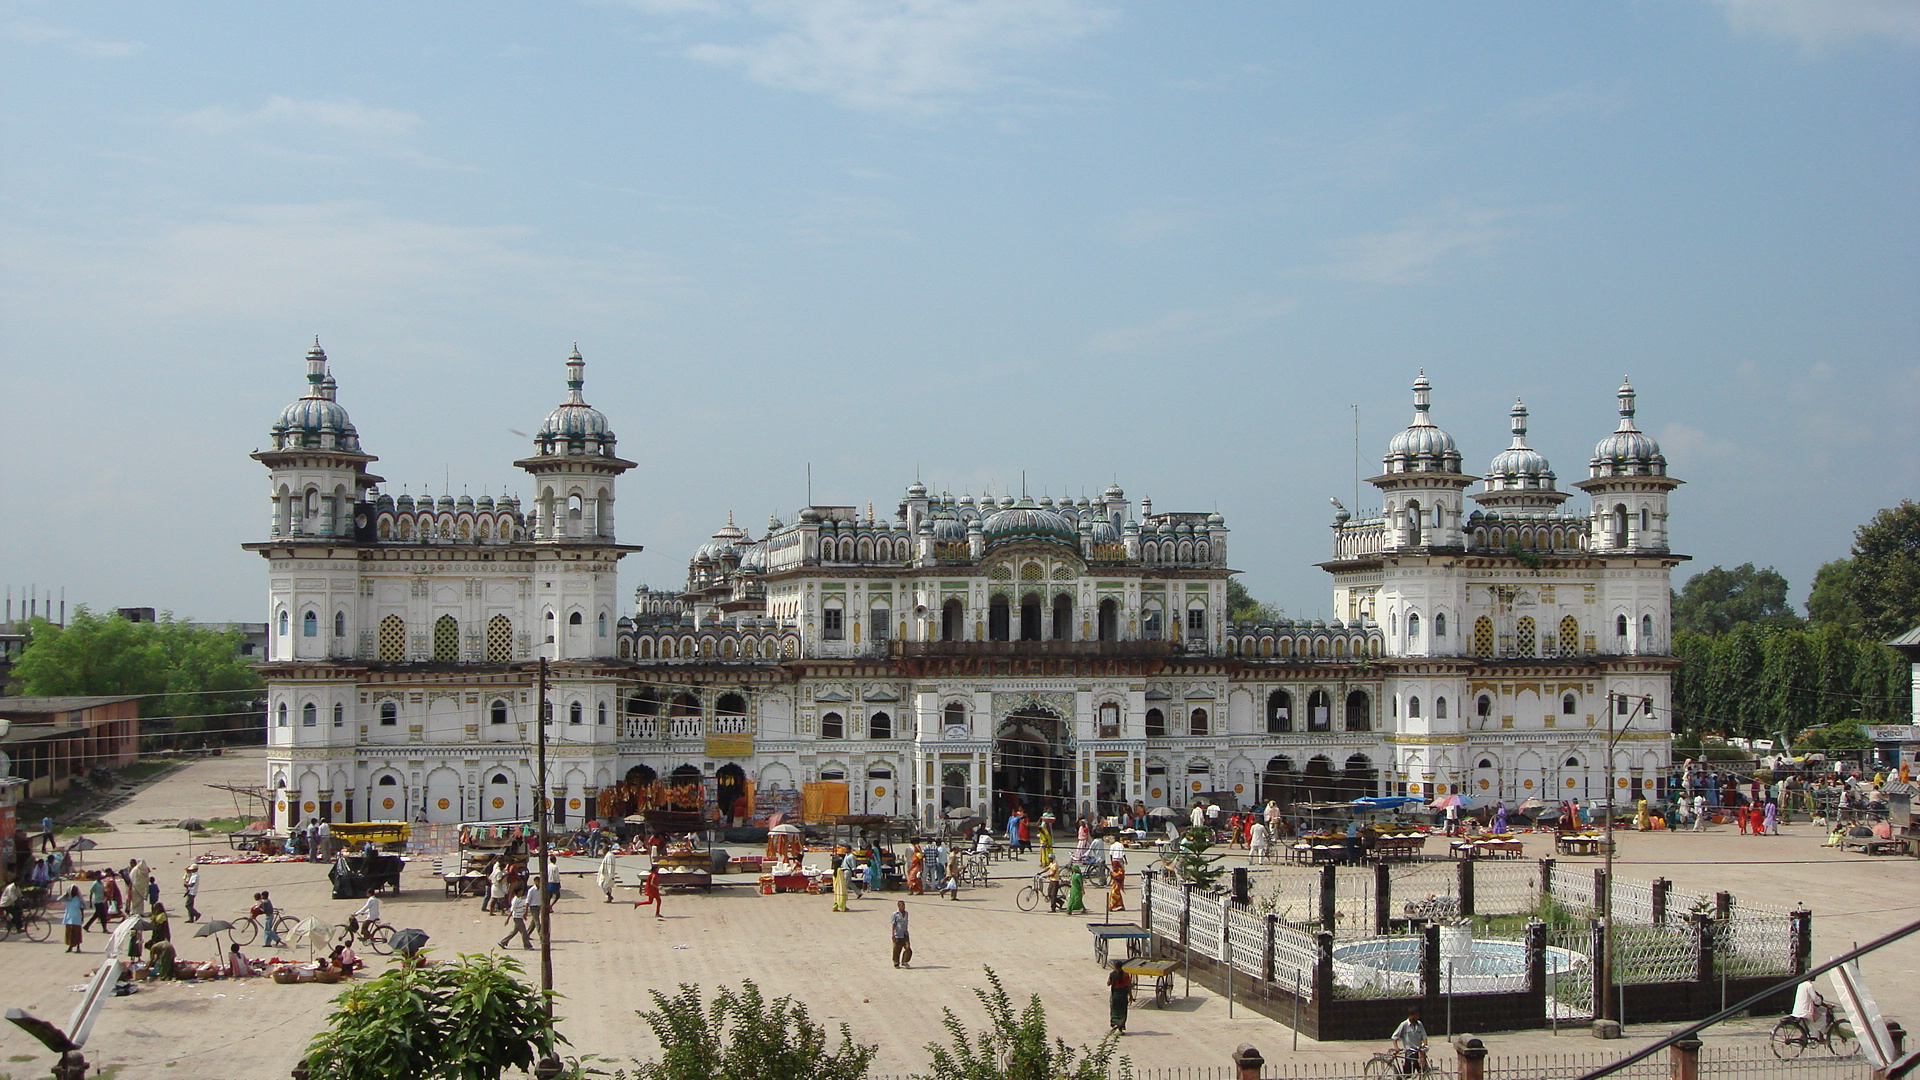 Janakpur Nepal  City pictures : Janki Mandir of Janakpur Dham Nepal Wikipedia, the free ...